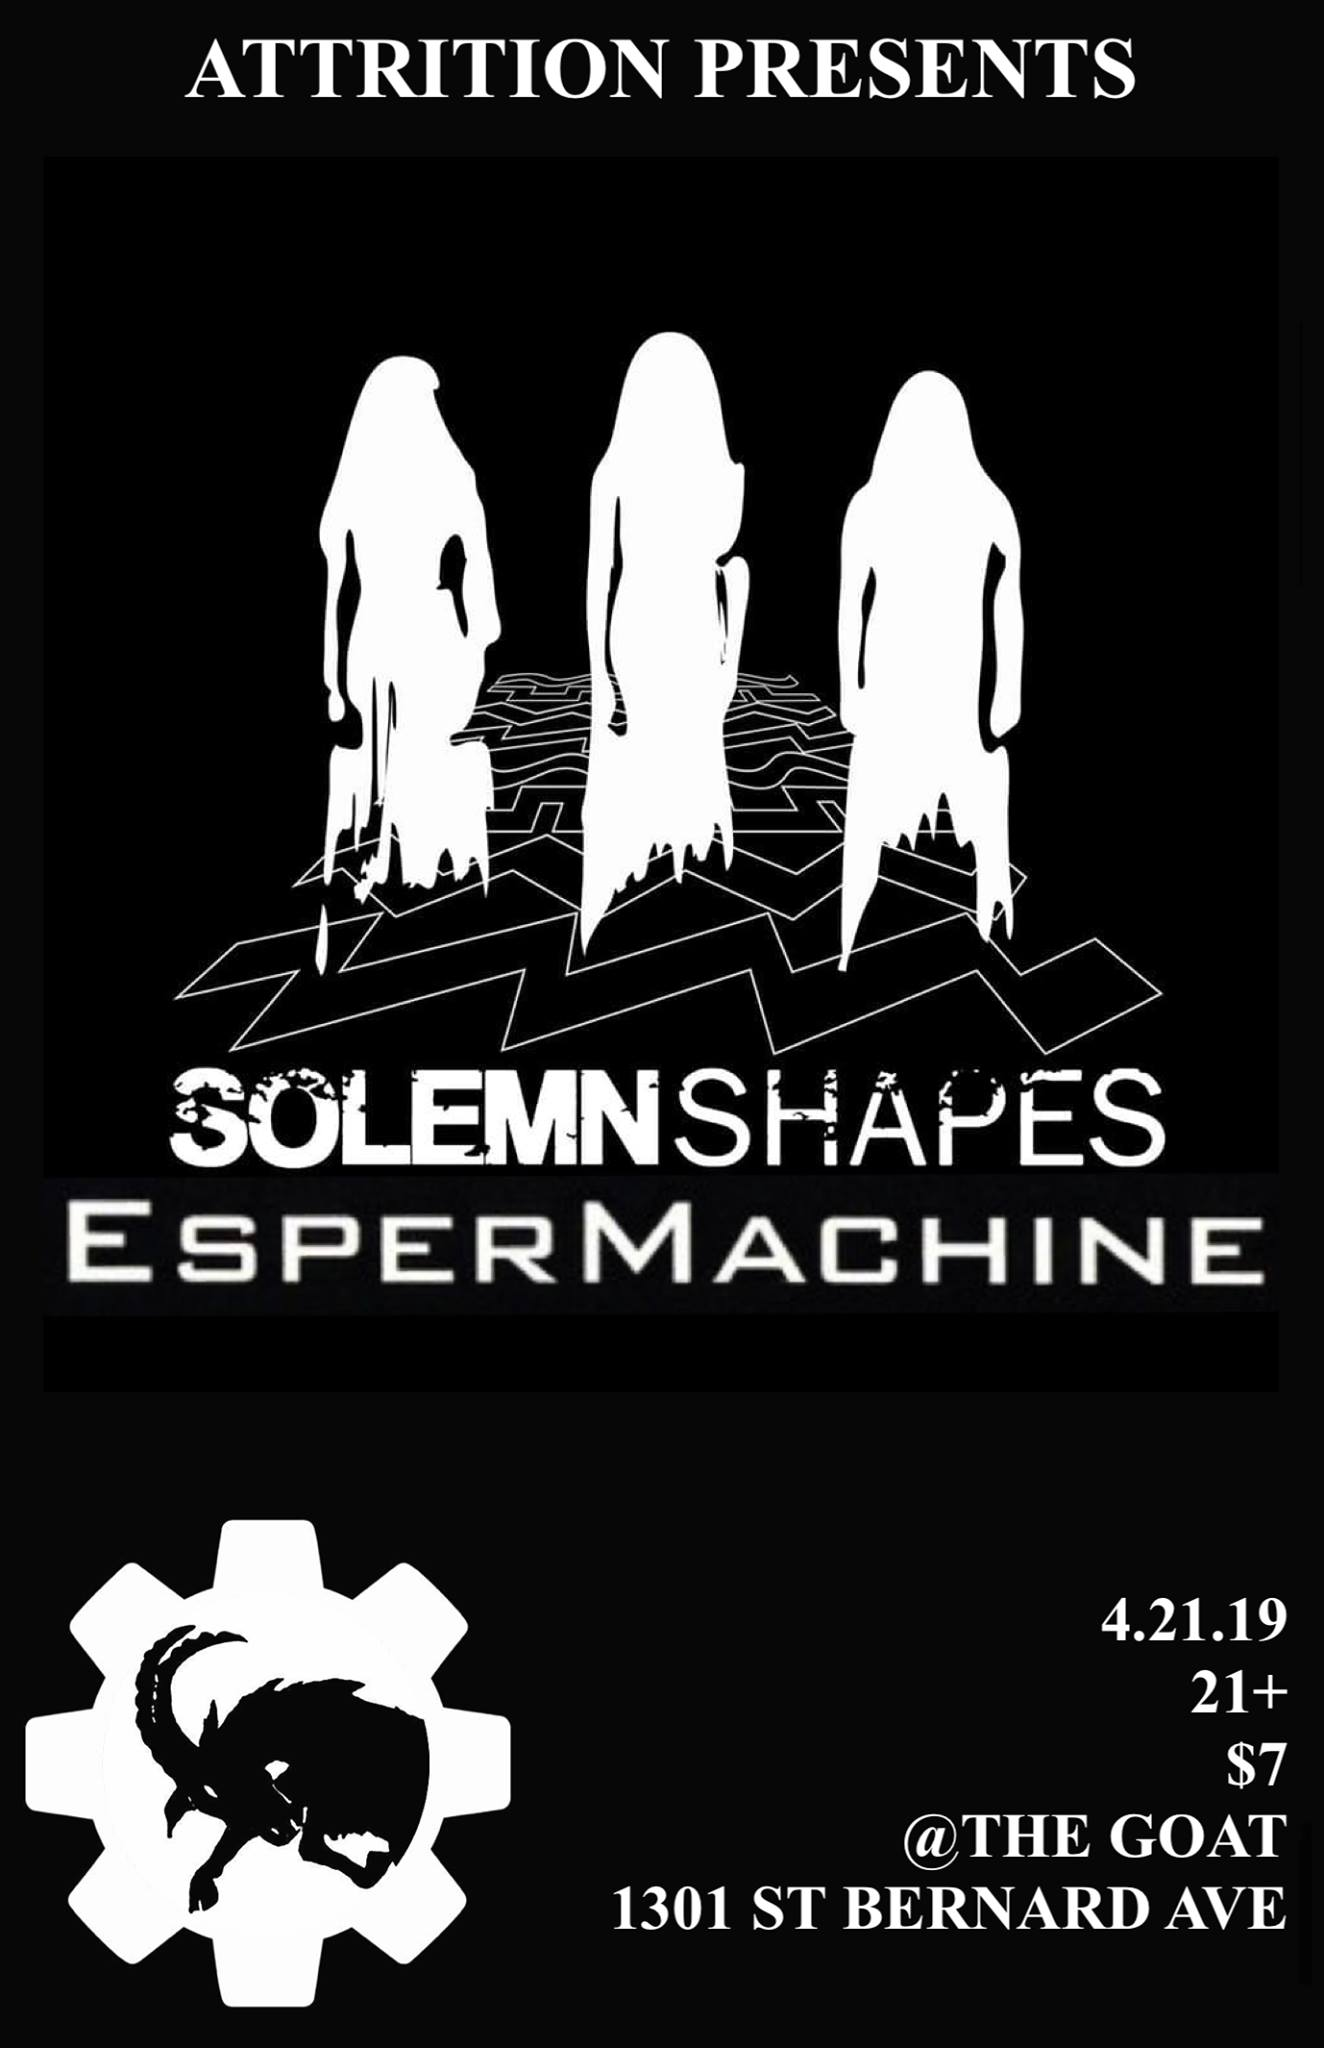 Attrition Presents Solemn Shapes + Espermachine - The Goat